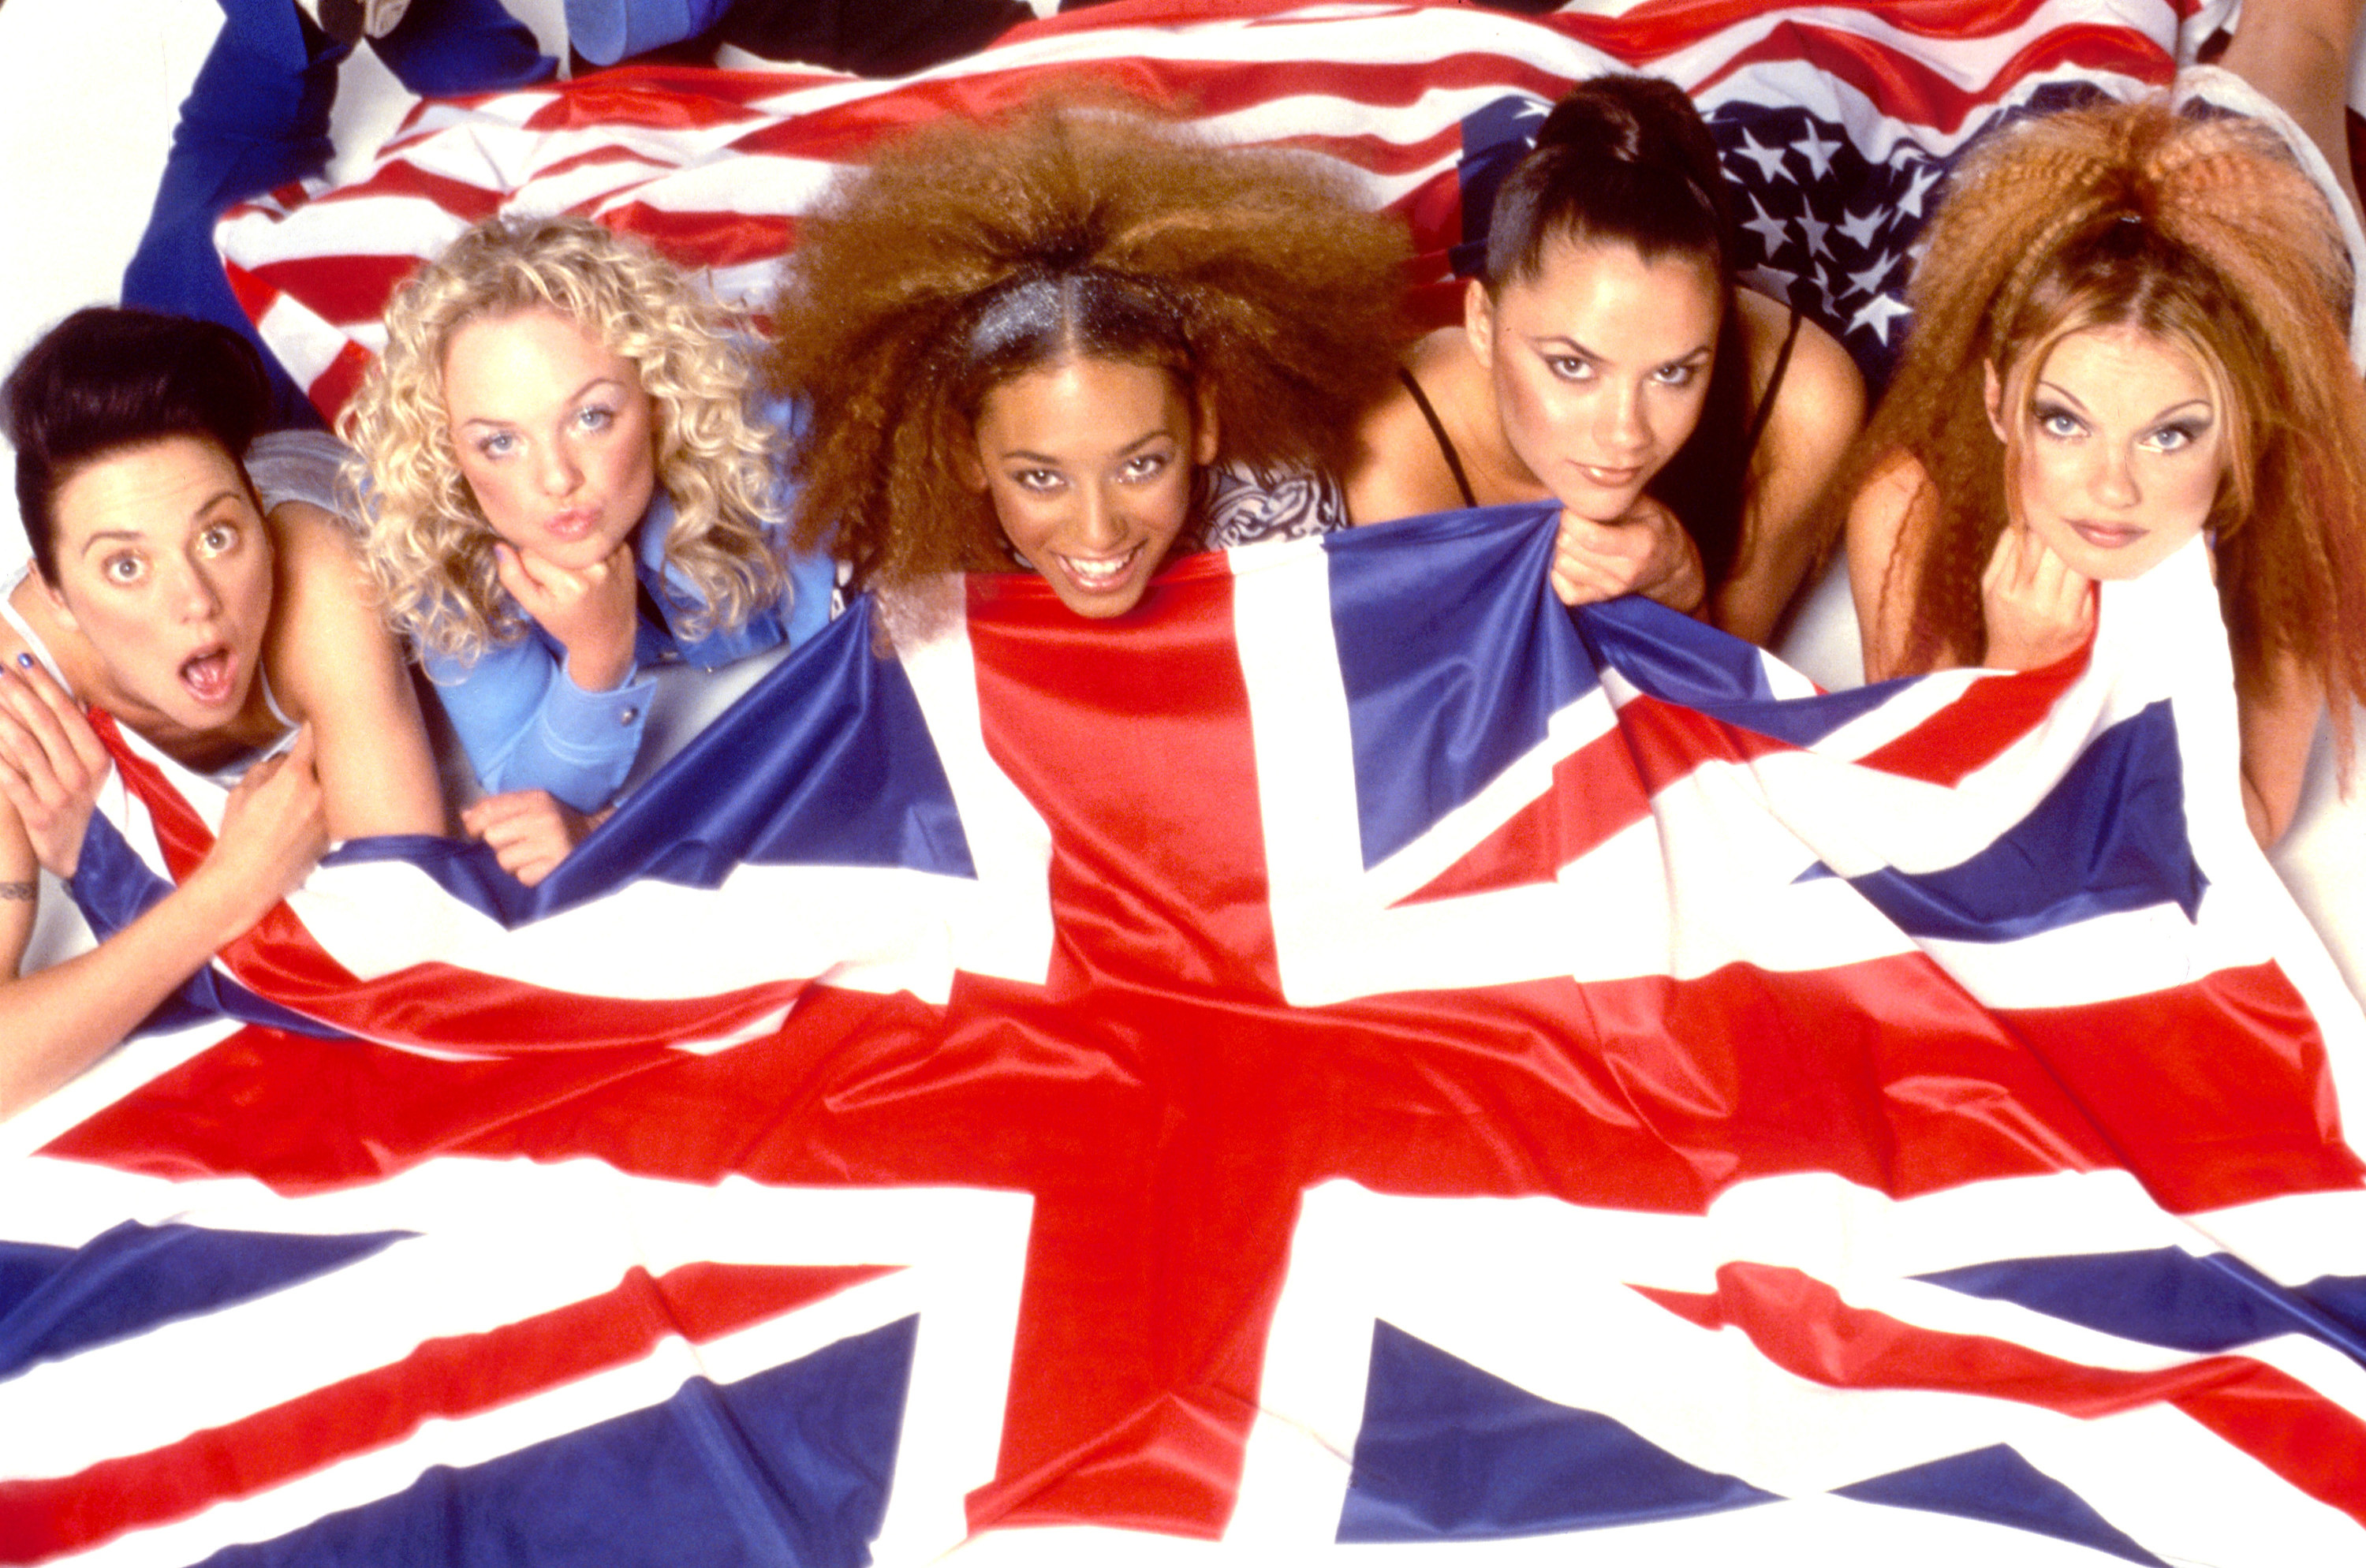 The Spice Girls pose with a United Kingdom flag in 1997